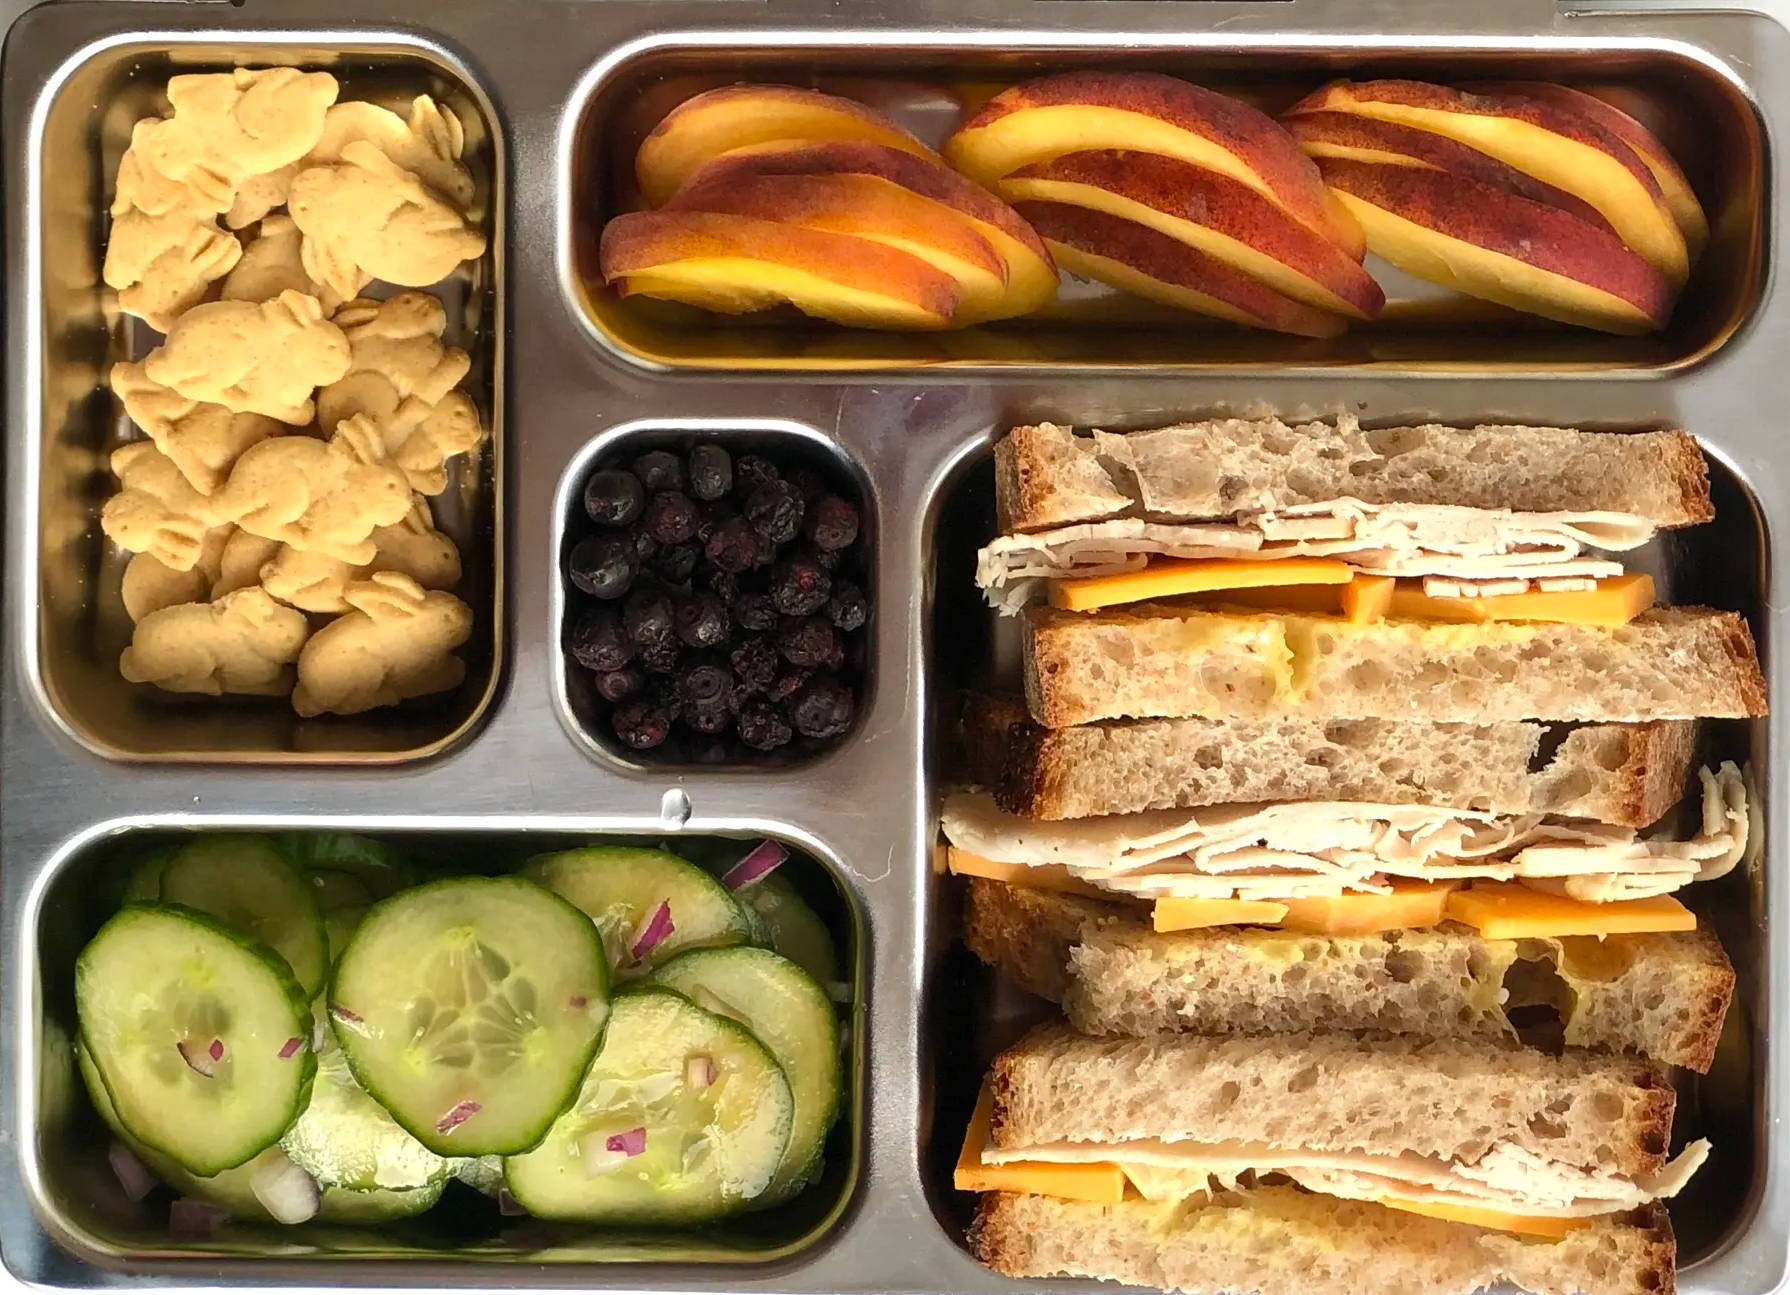 Sneak peek of a kid's quick and healthy school lunch containing Turkey & Cheddar on Sourdough, Quick Cucumber Salad, Sliced Peach, Mini Graham Crackers, and Freeze-Dried Fruit.